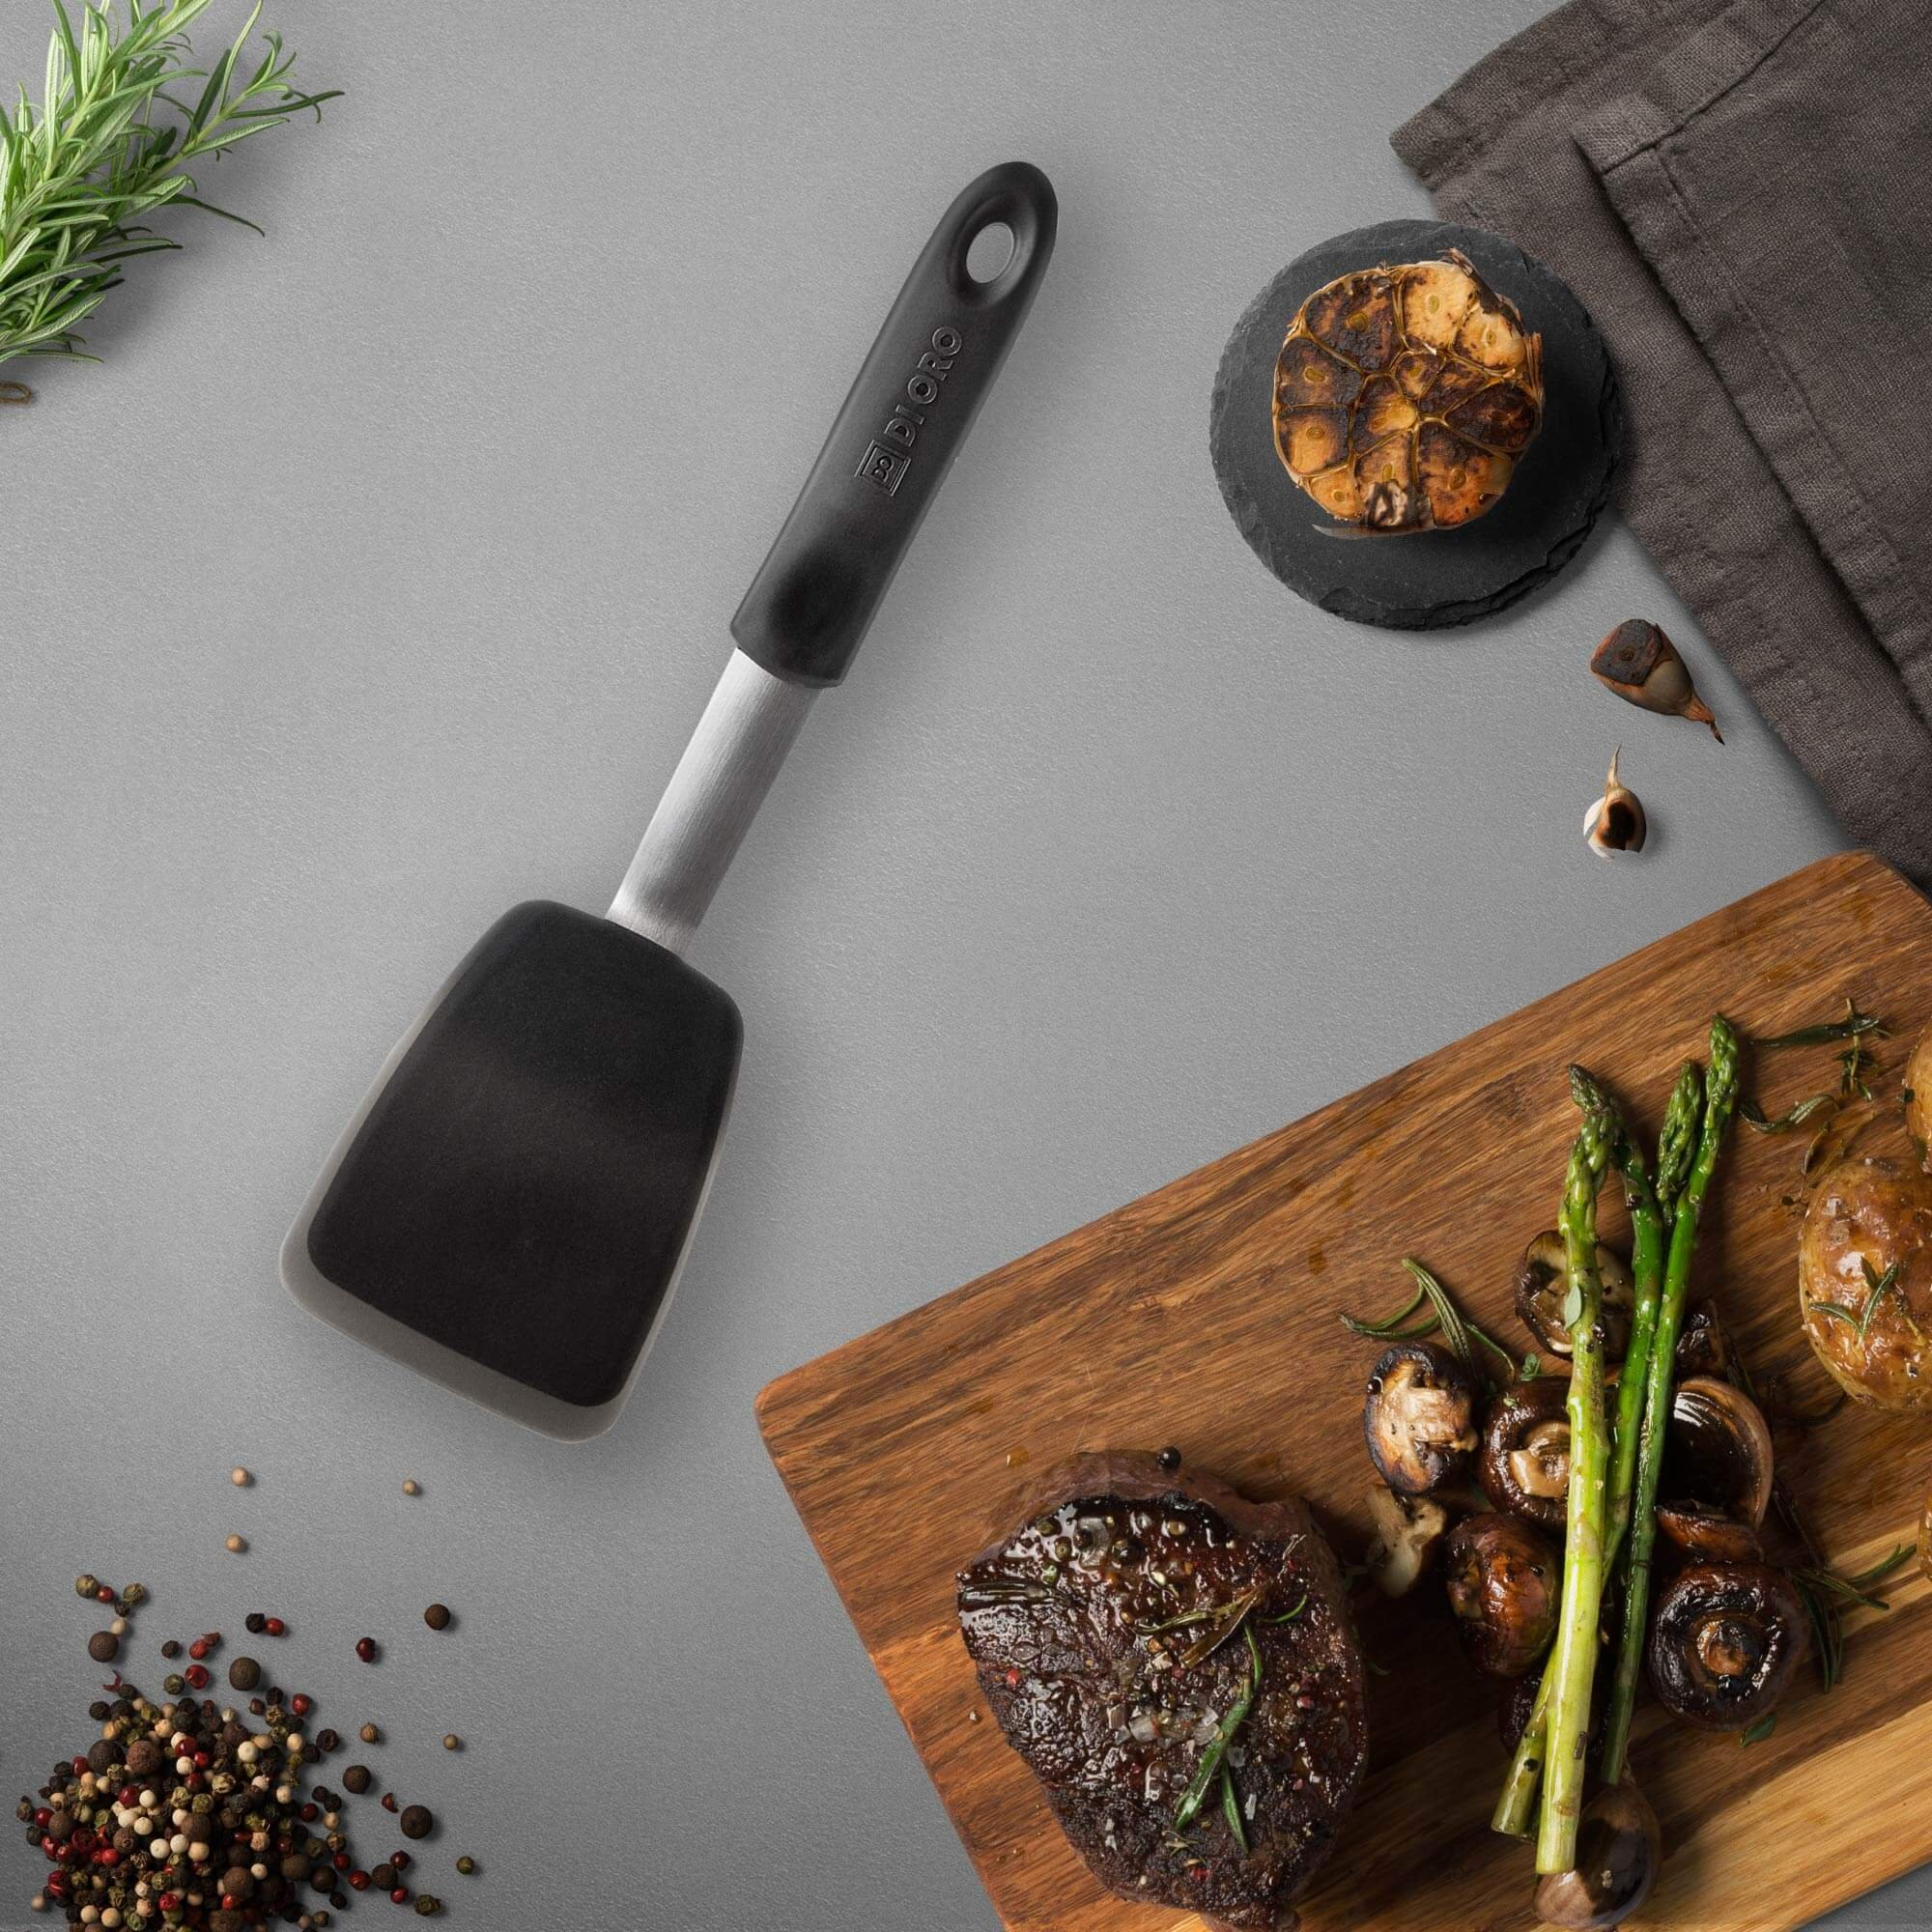 DI ORO Chef Series Premium Flexible Silicone Standard Turner Spatula - The Best Egg, Pancake, and Flipper Silicon Spatula - Versatile 600ºF Heat Resistant Rubber Turner to Meet All Your Kitchen Needs by di Oro Living (Image #4)